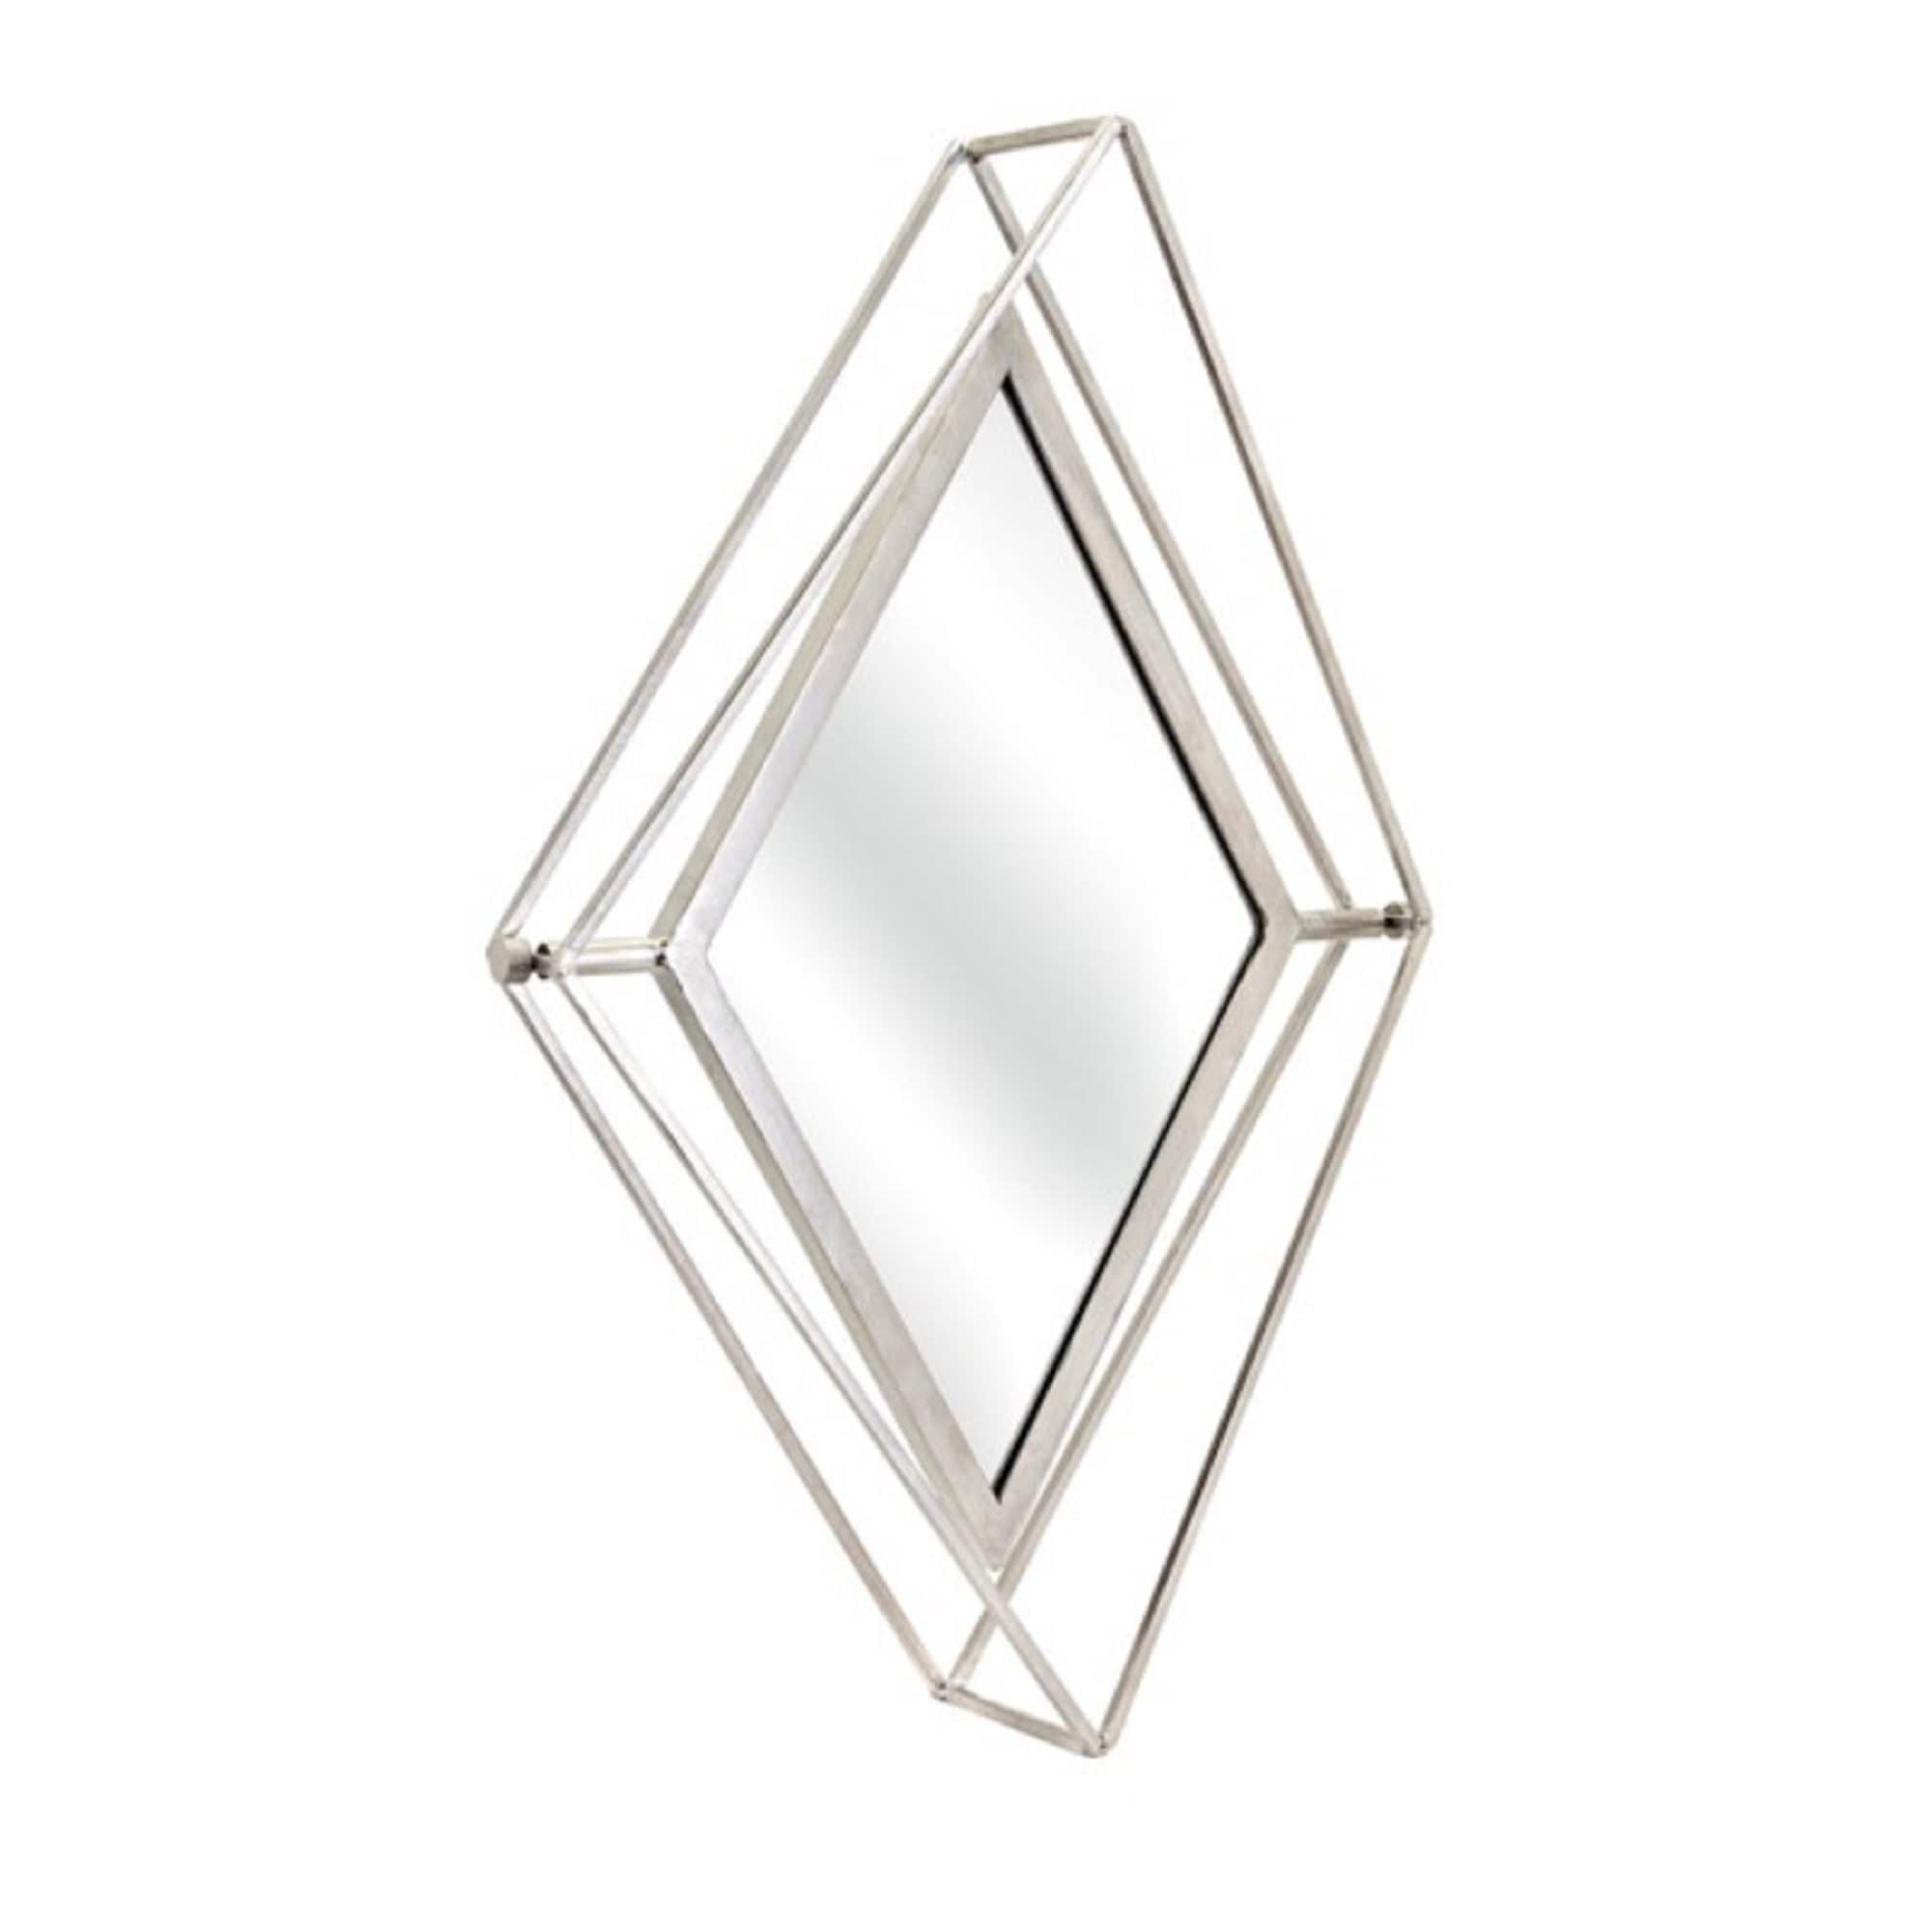 32 Silver Colored Distressed Finished Decorative Livvy Diamond Shaped Mirror Overstock 22121372